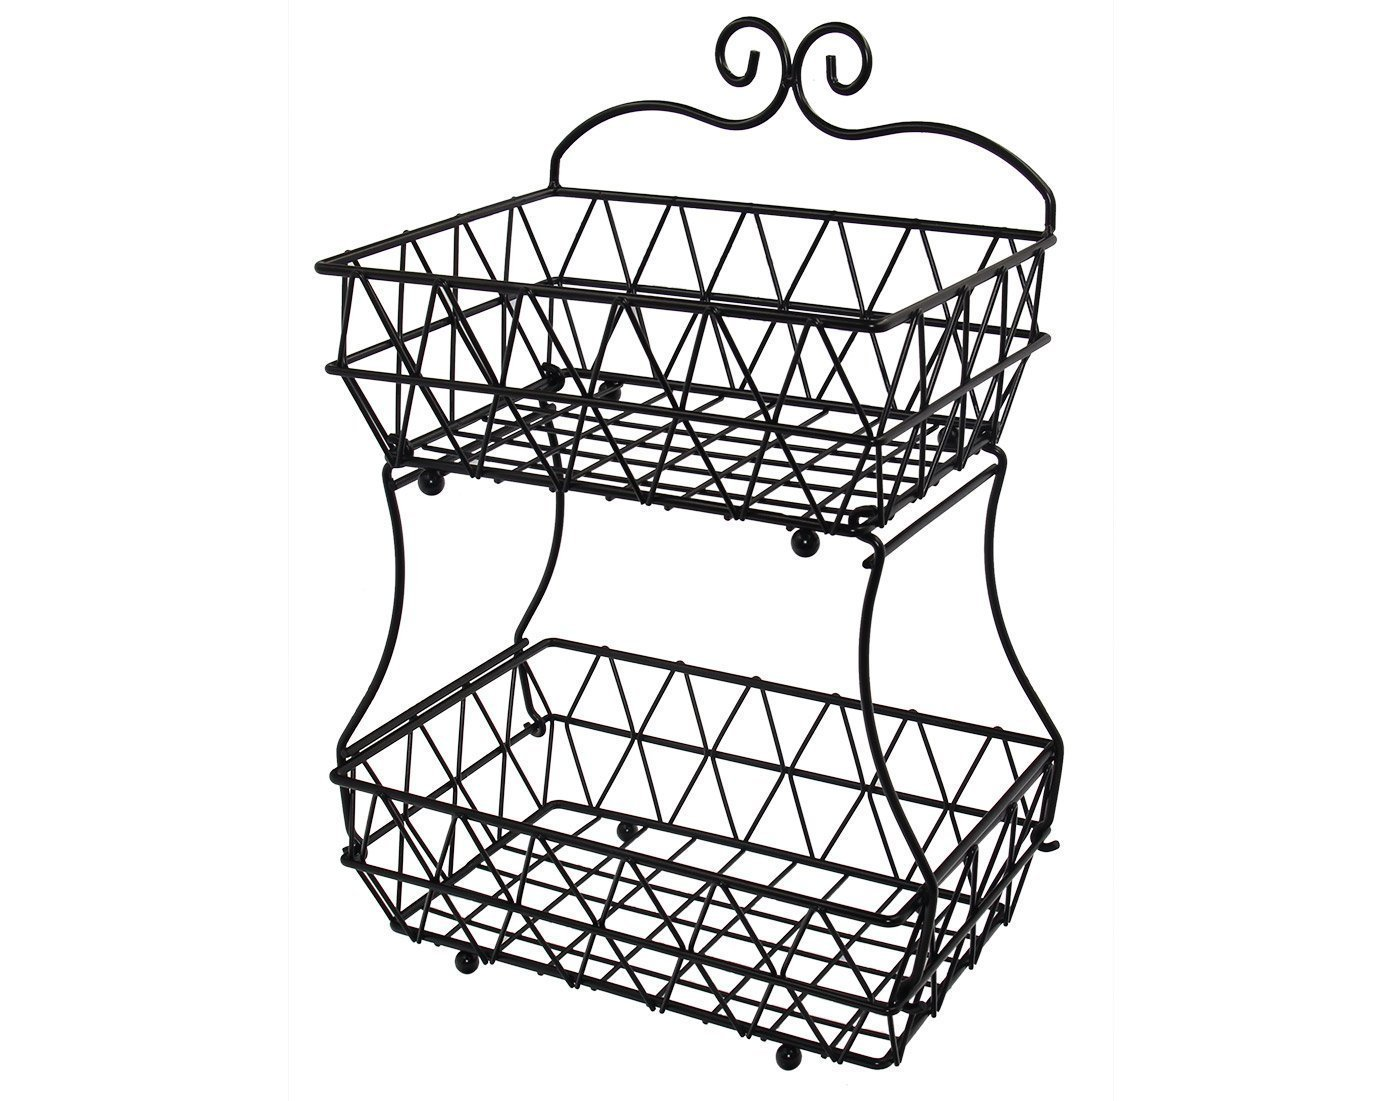 Upgraded Version - ESYLIFE 2 Tier Fruit Bread Basket Display Stand - Screws Free Design